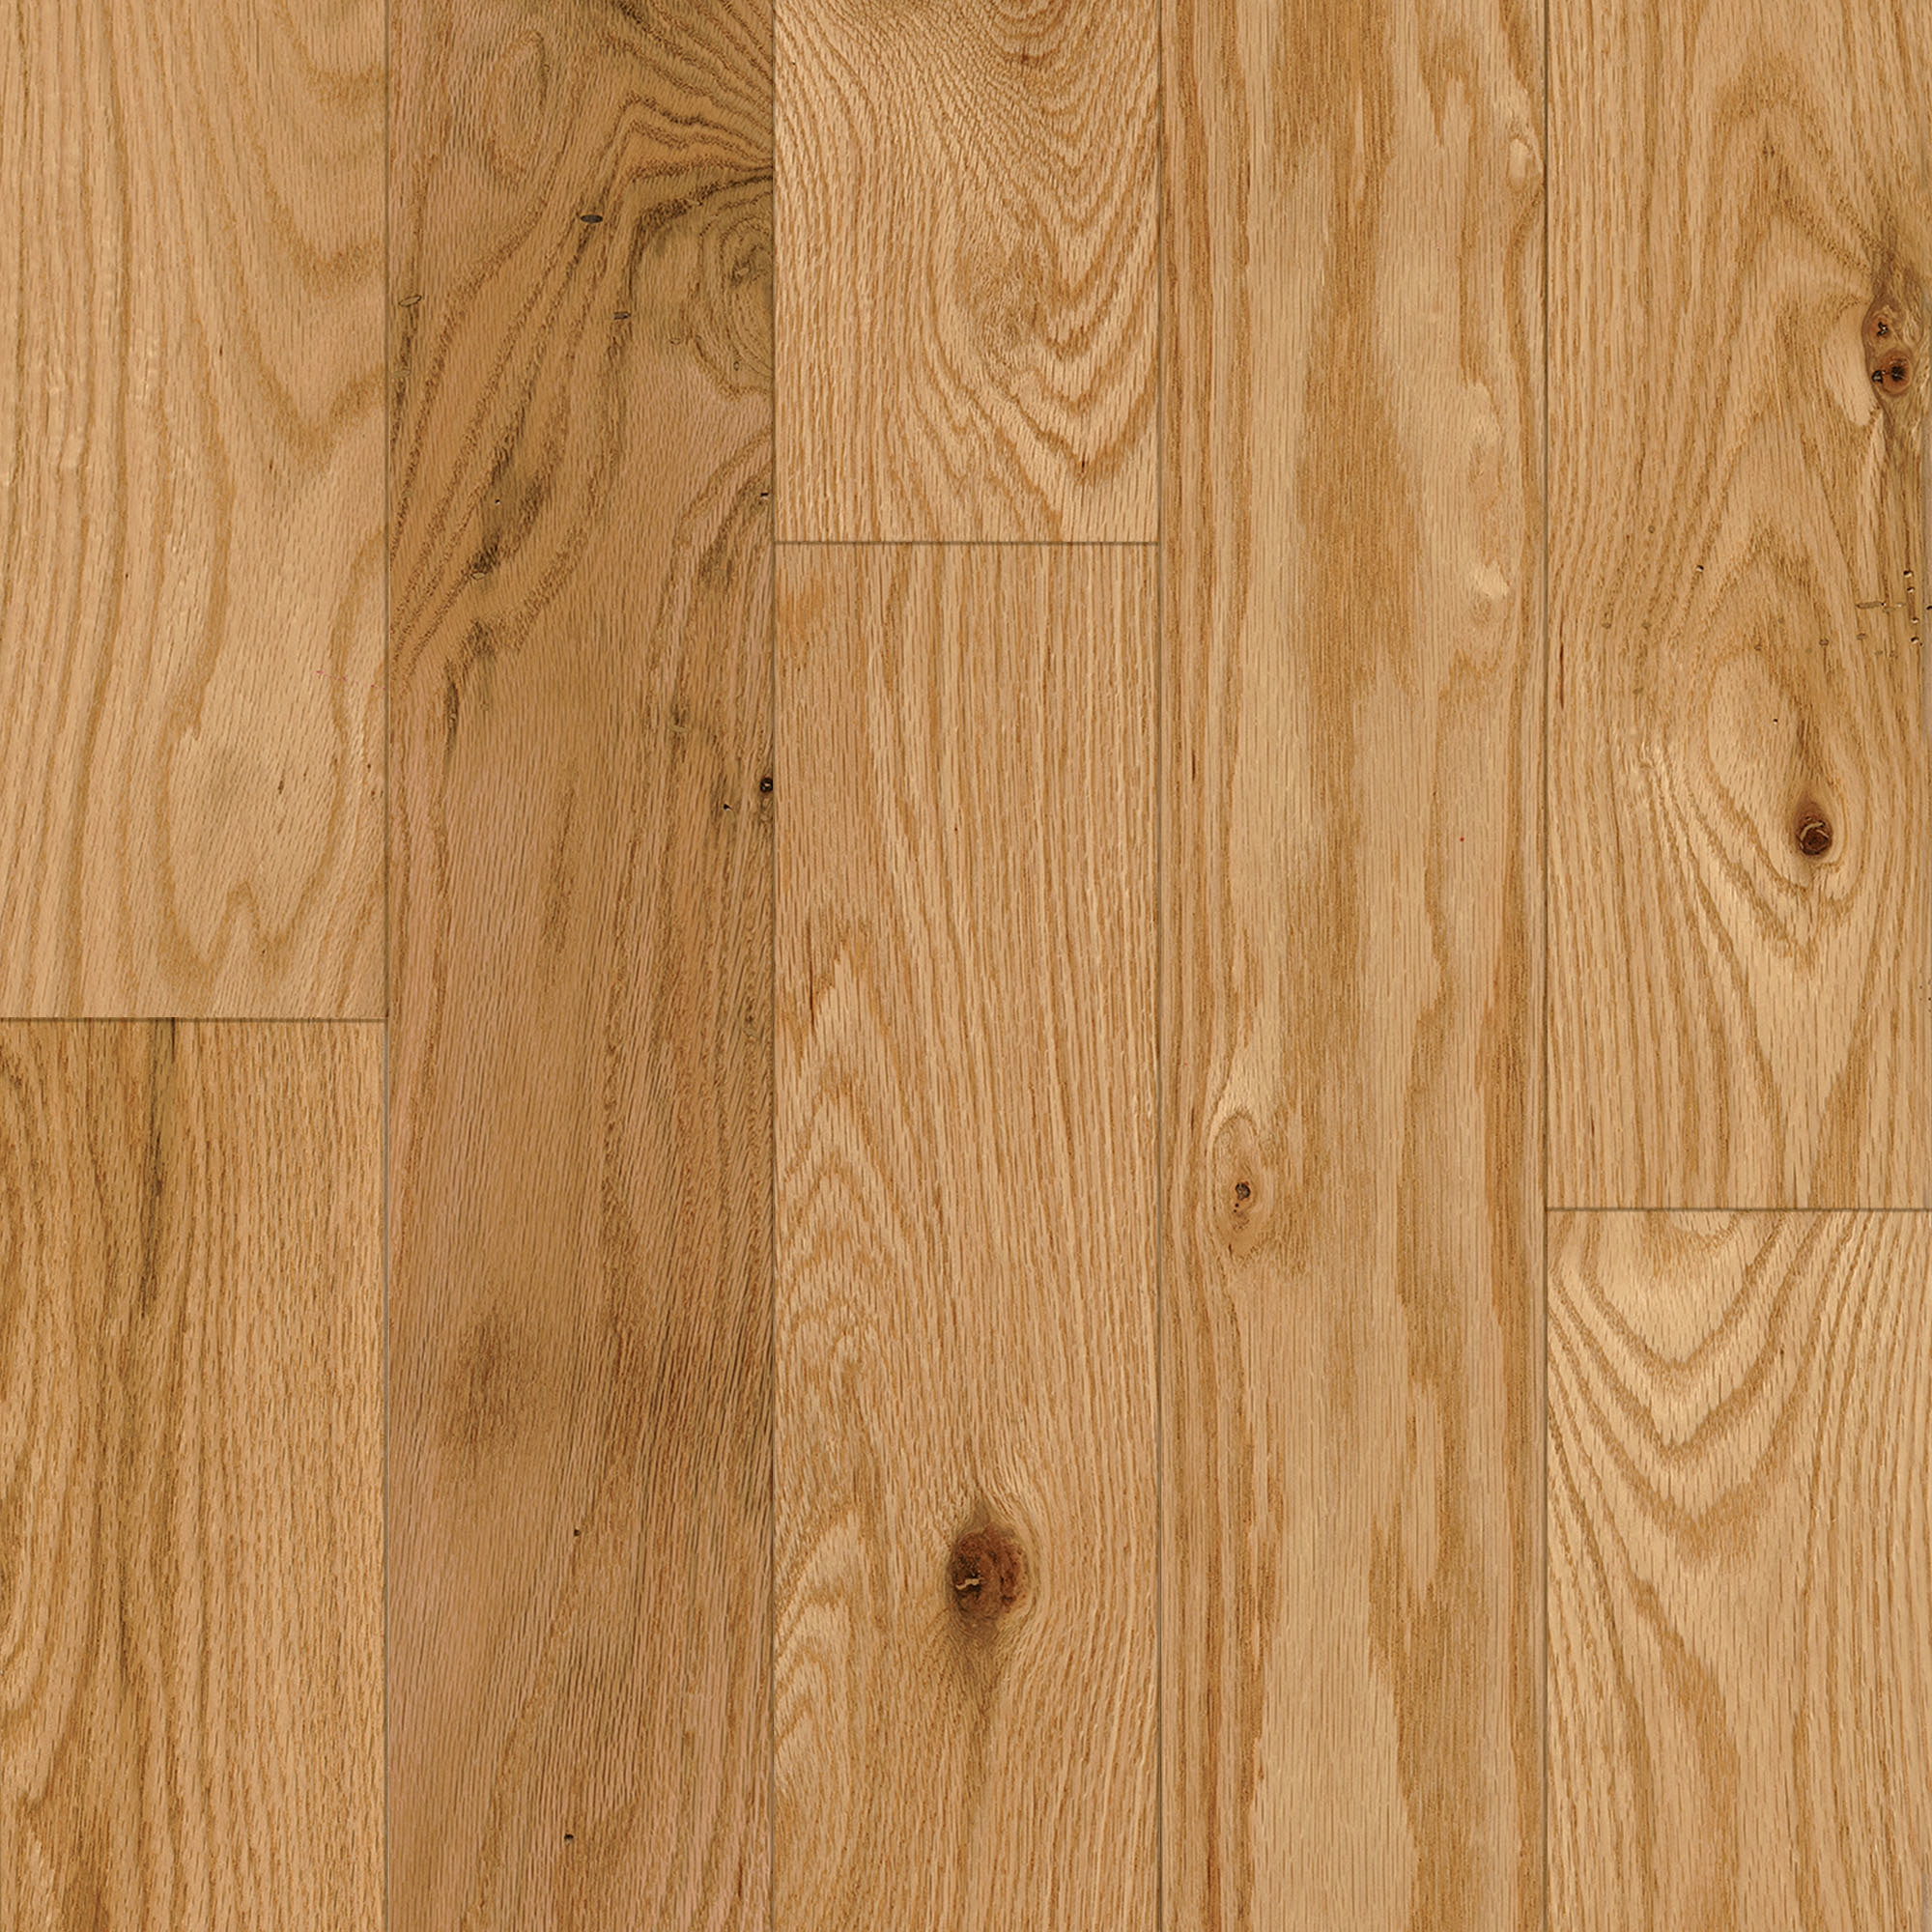 jasper prefinished oak hardwood flooring reviews